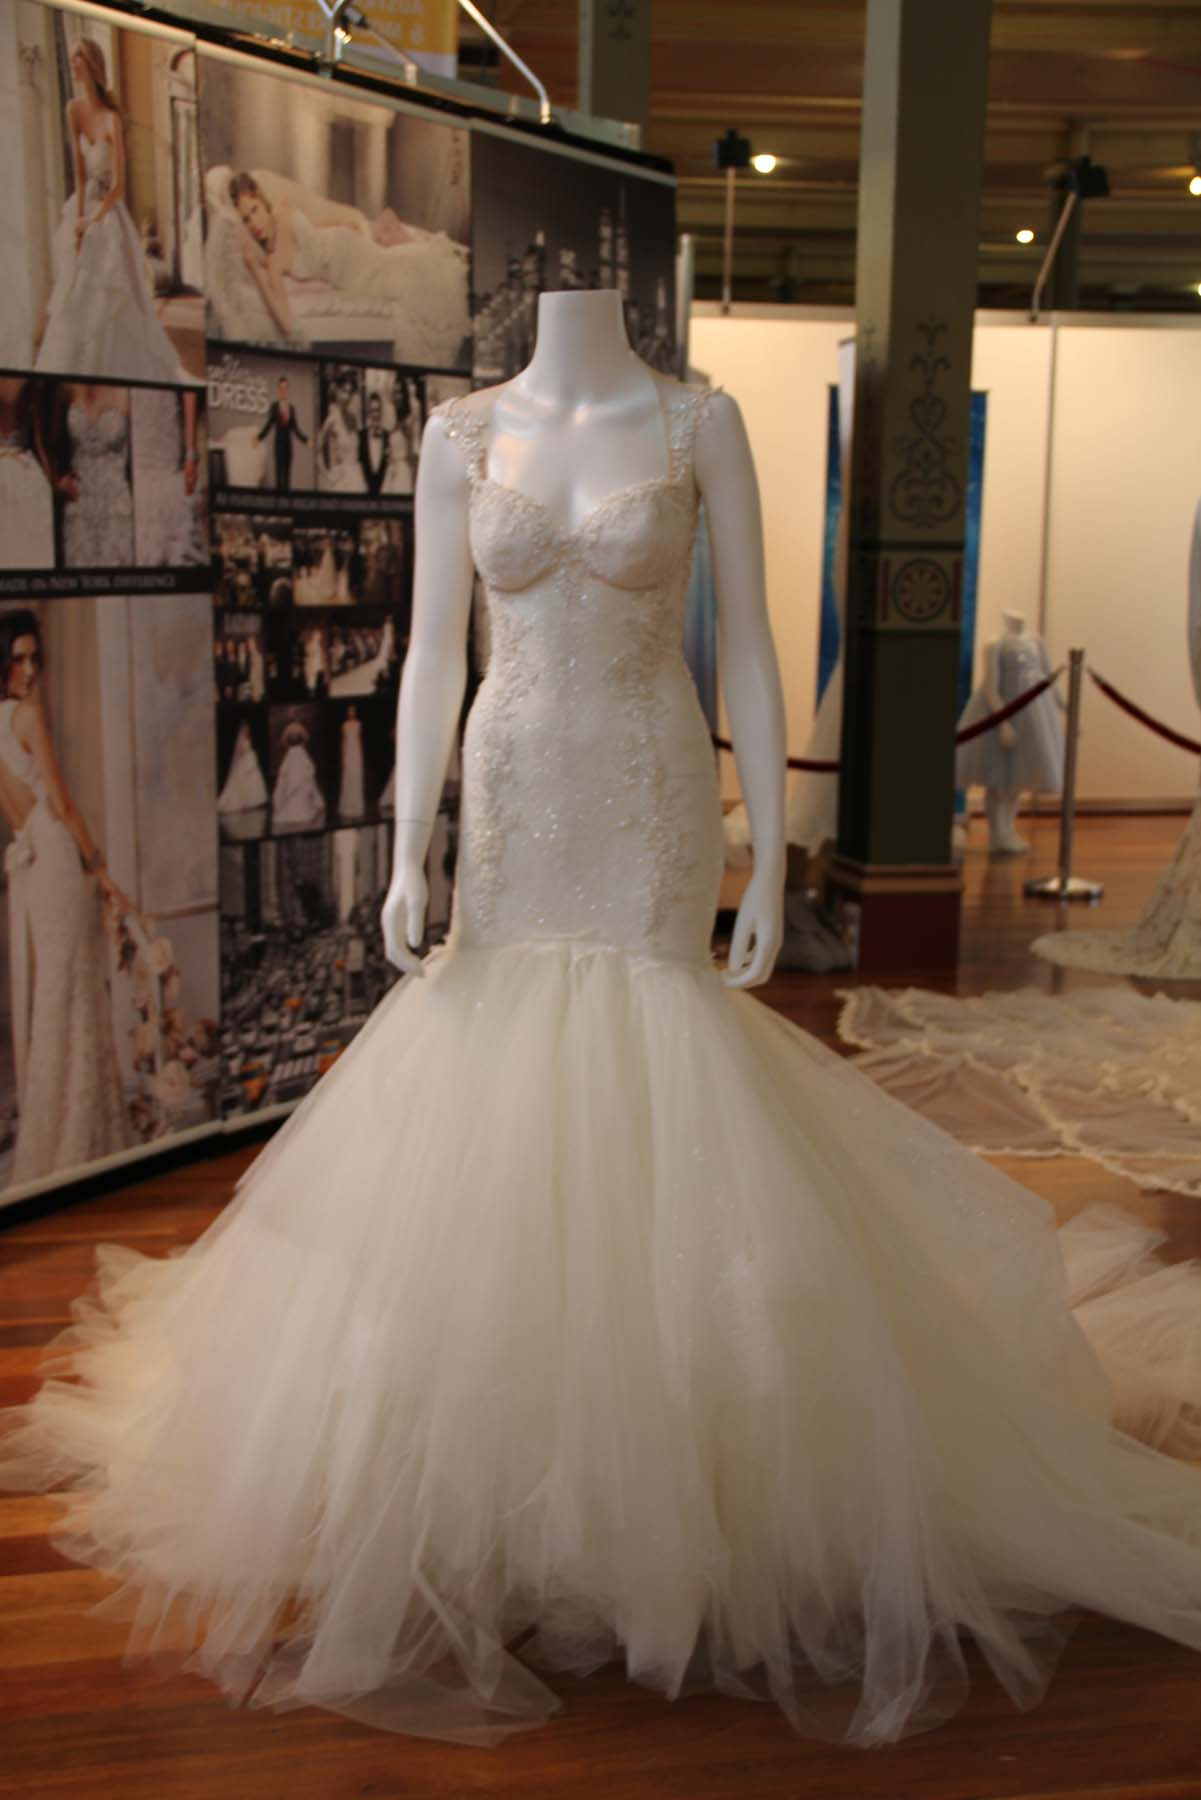 Expo trends: What\'s hot in wedding dresses - Articles - Easy Weddings